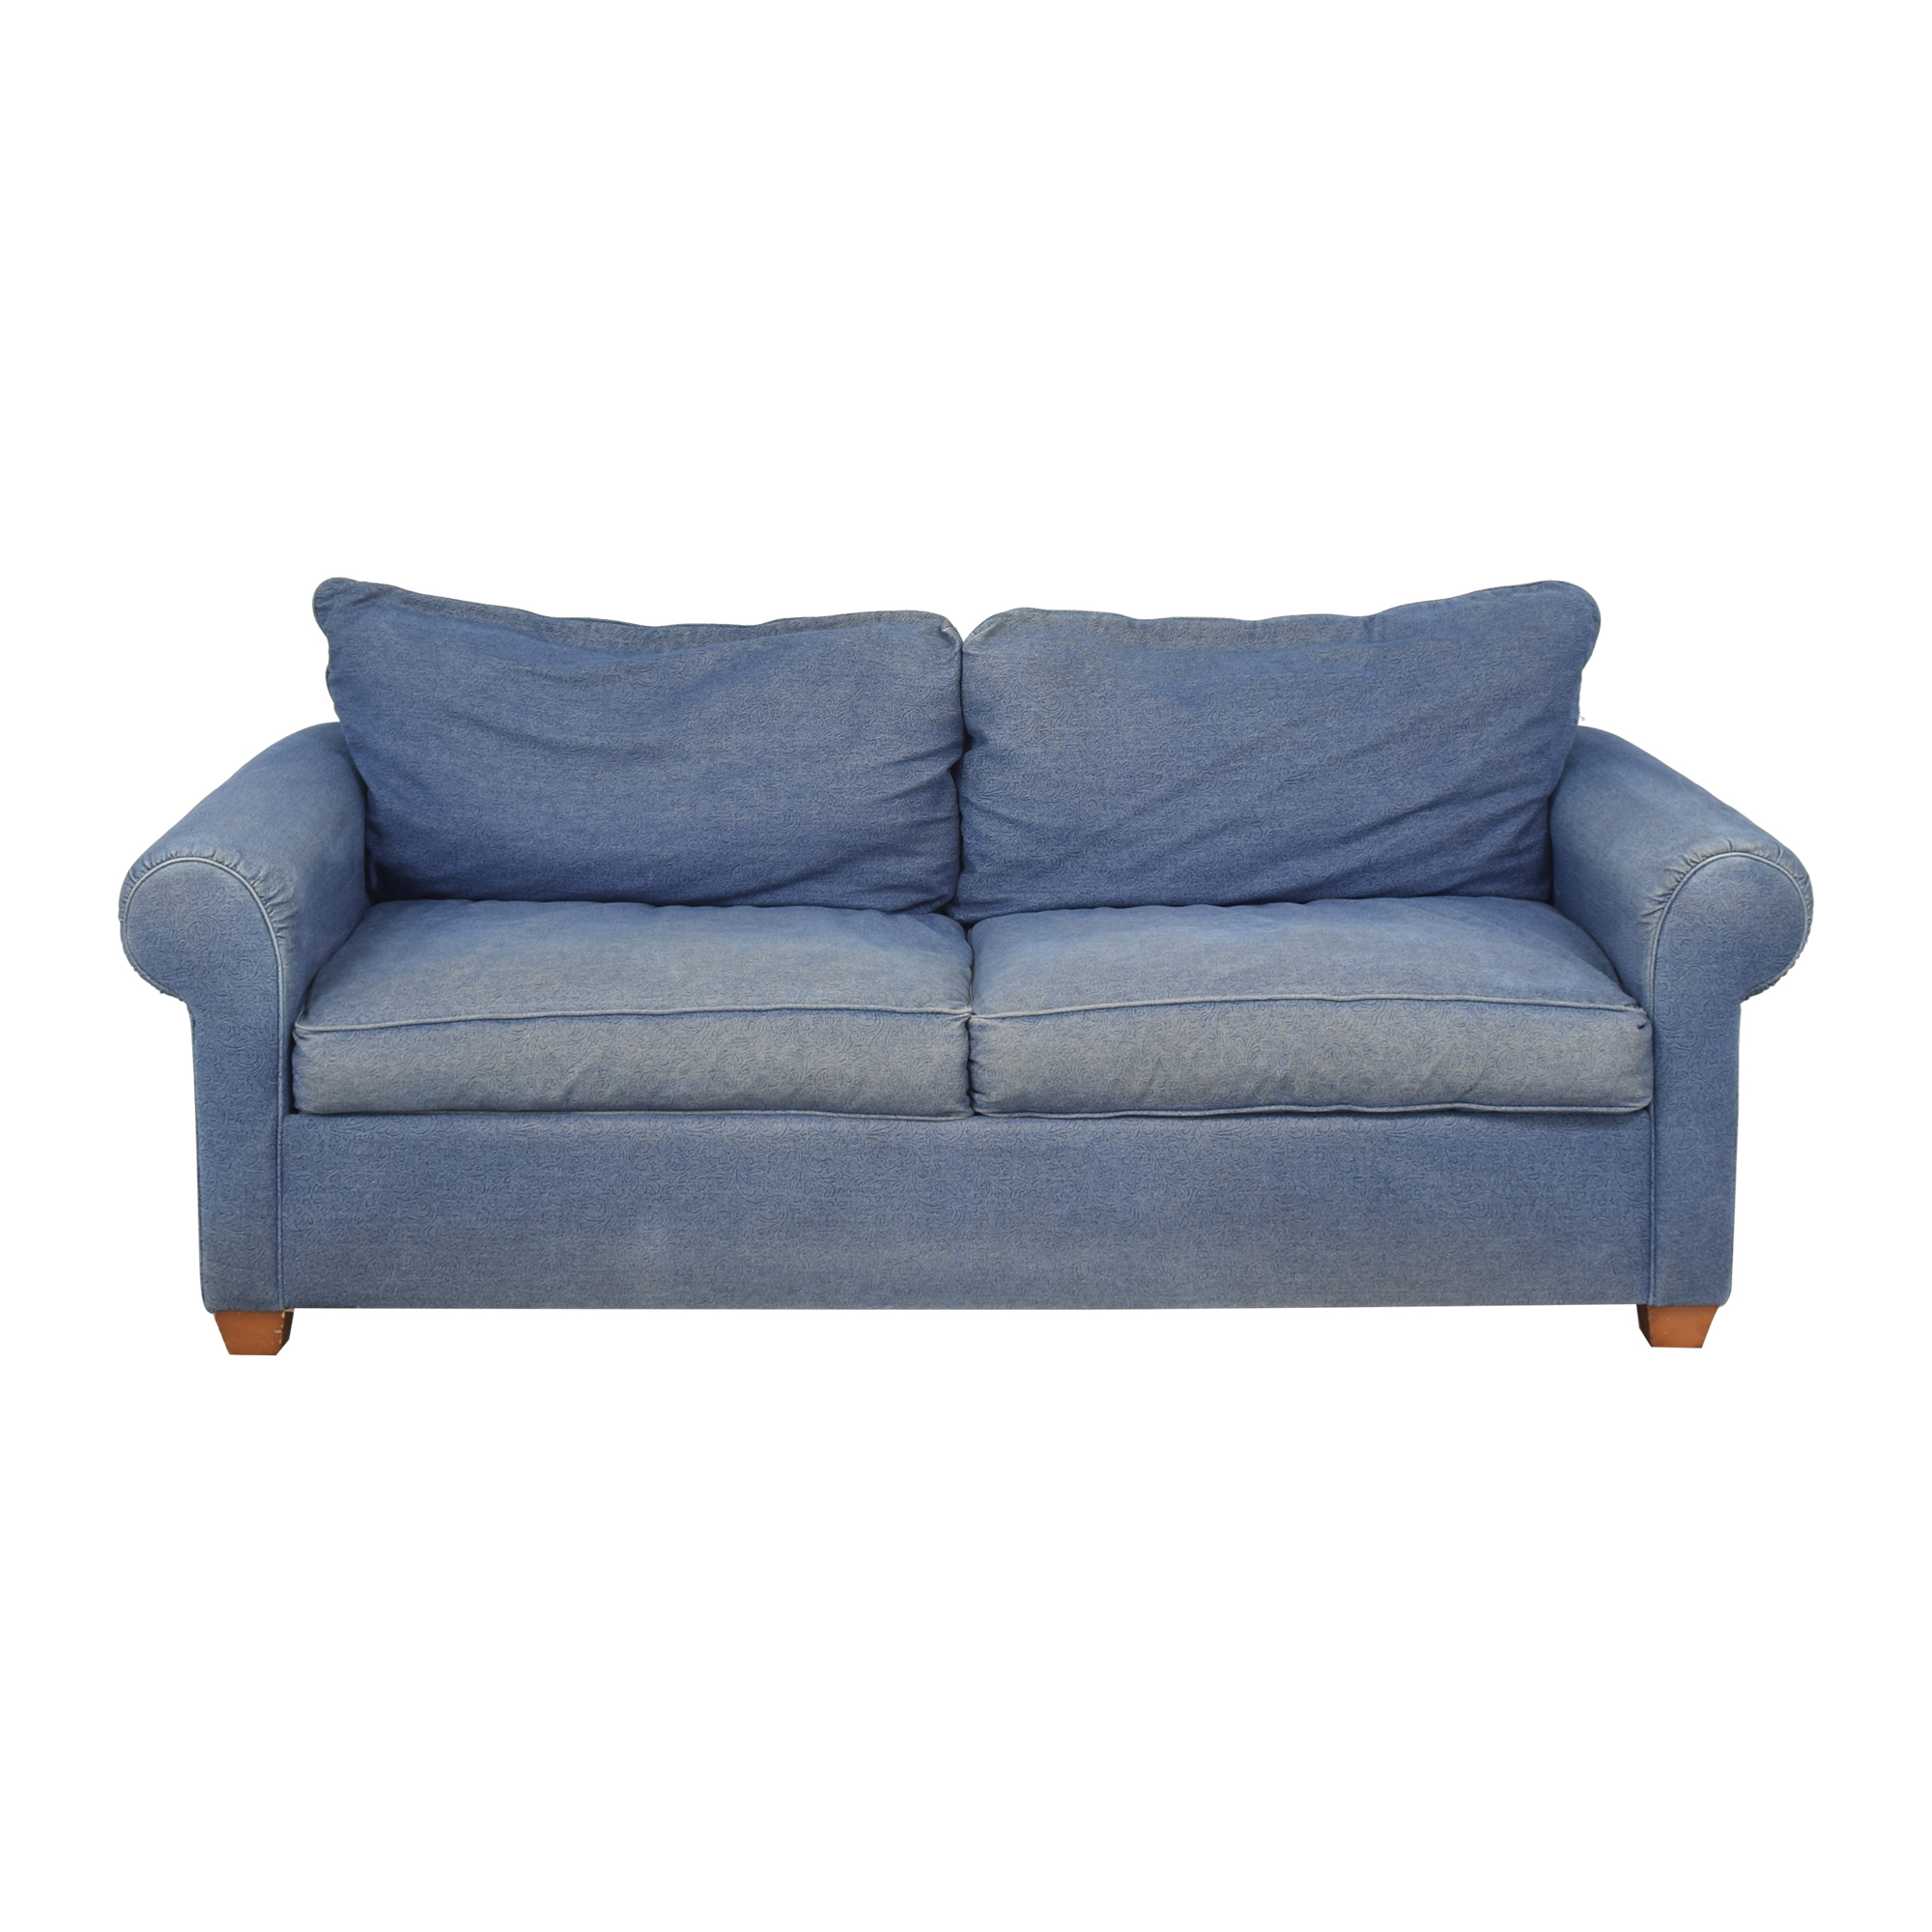 Leggett & Platt Leggett & Platt Denim Queen Pull Out Sofa dimensions